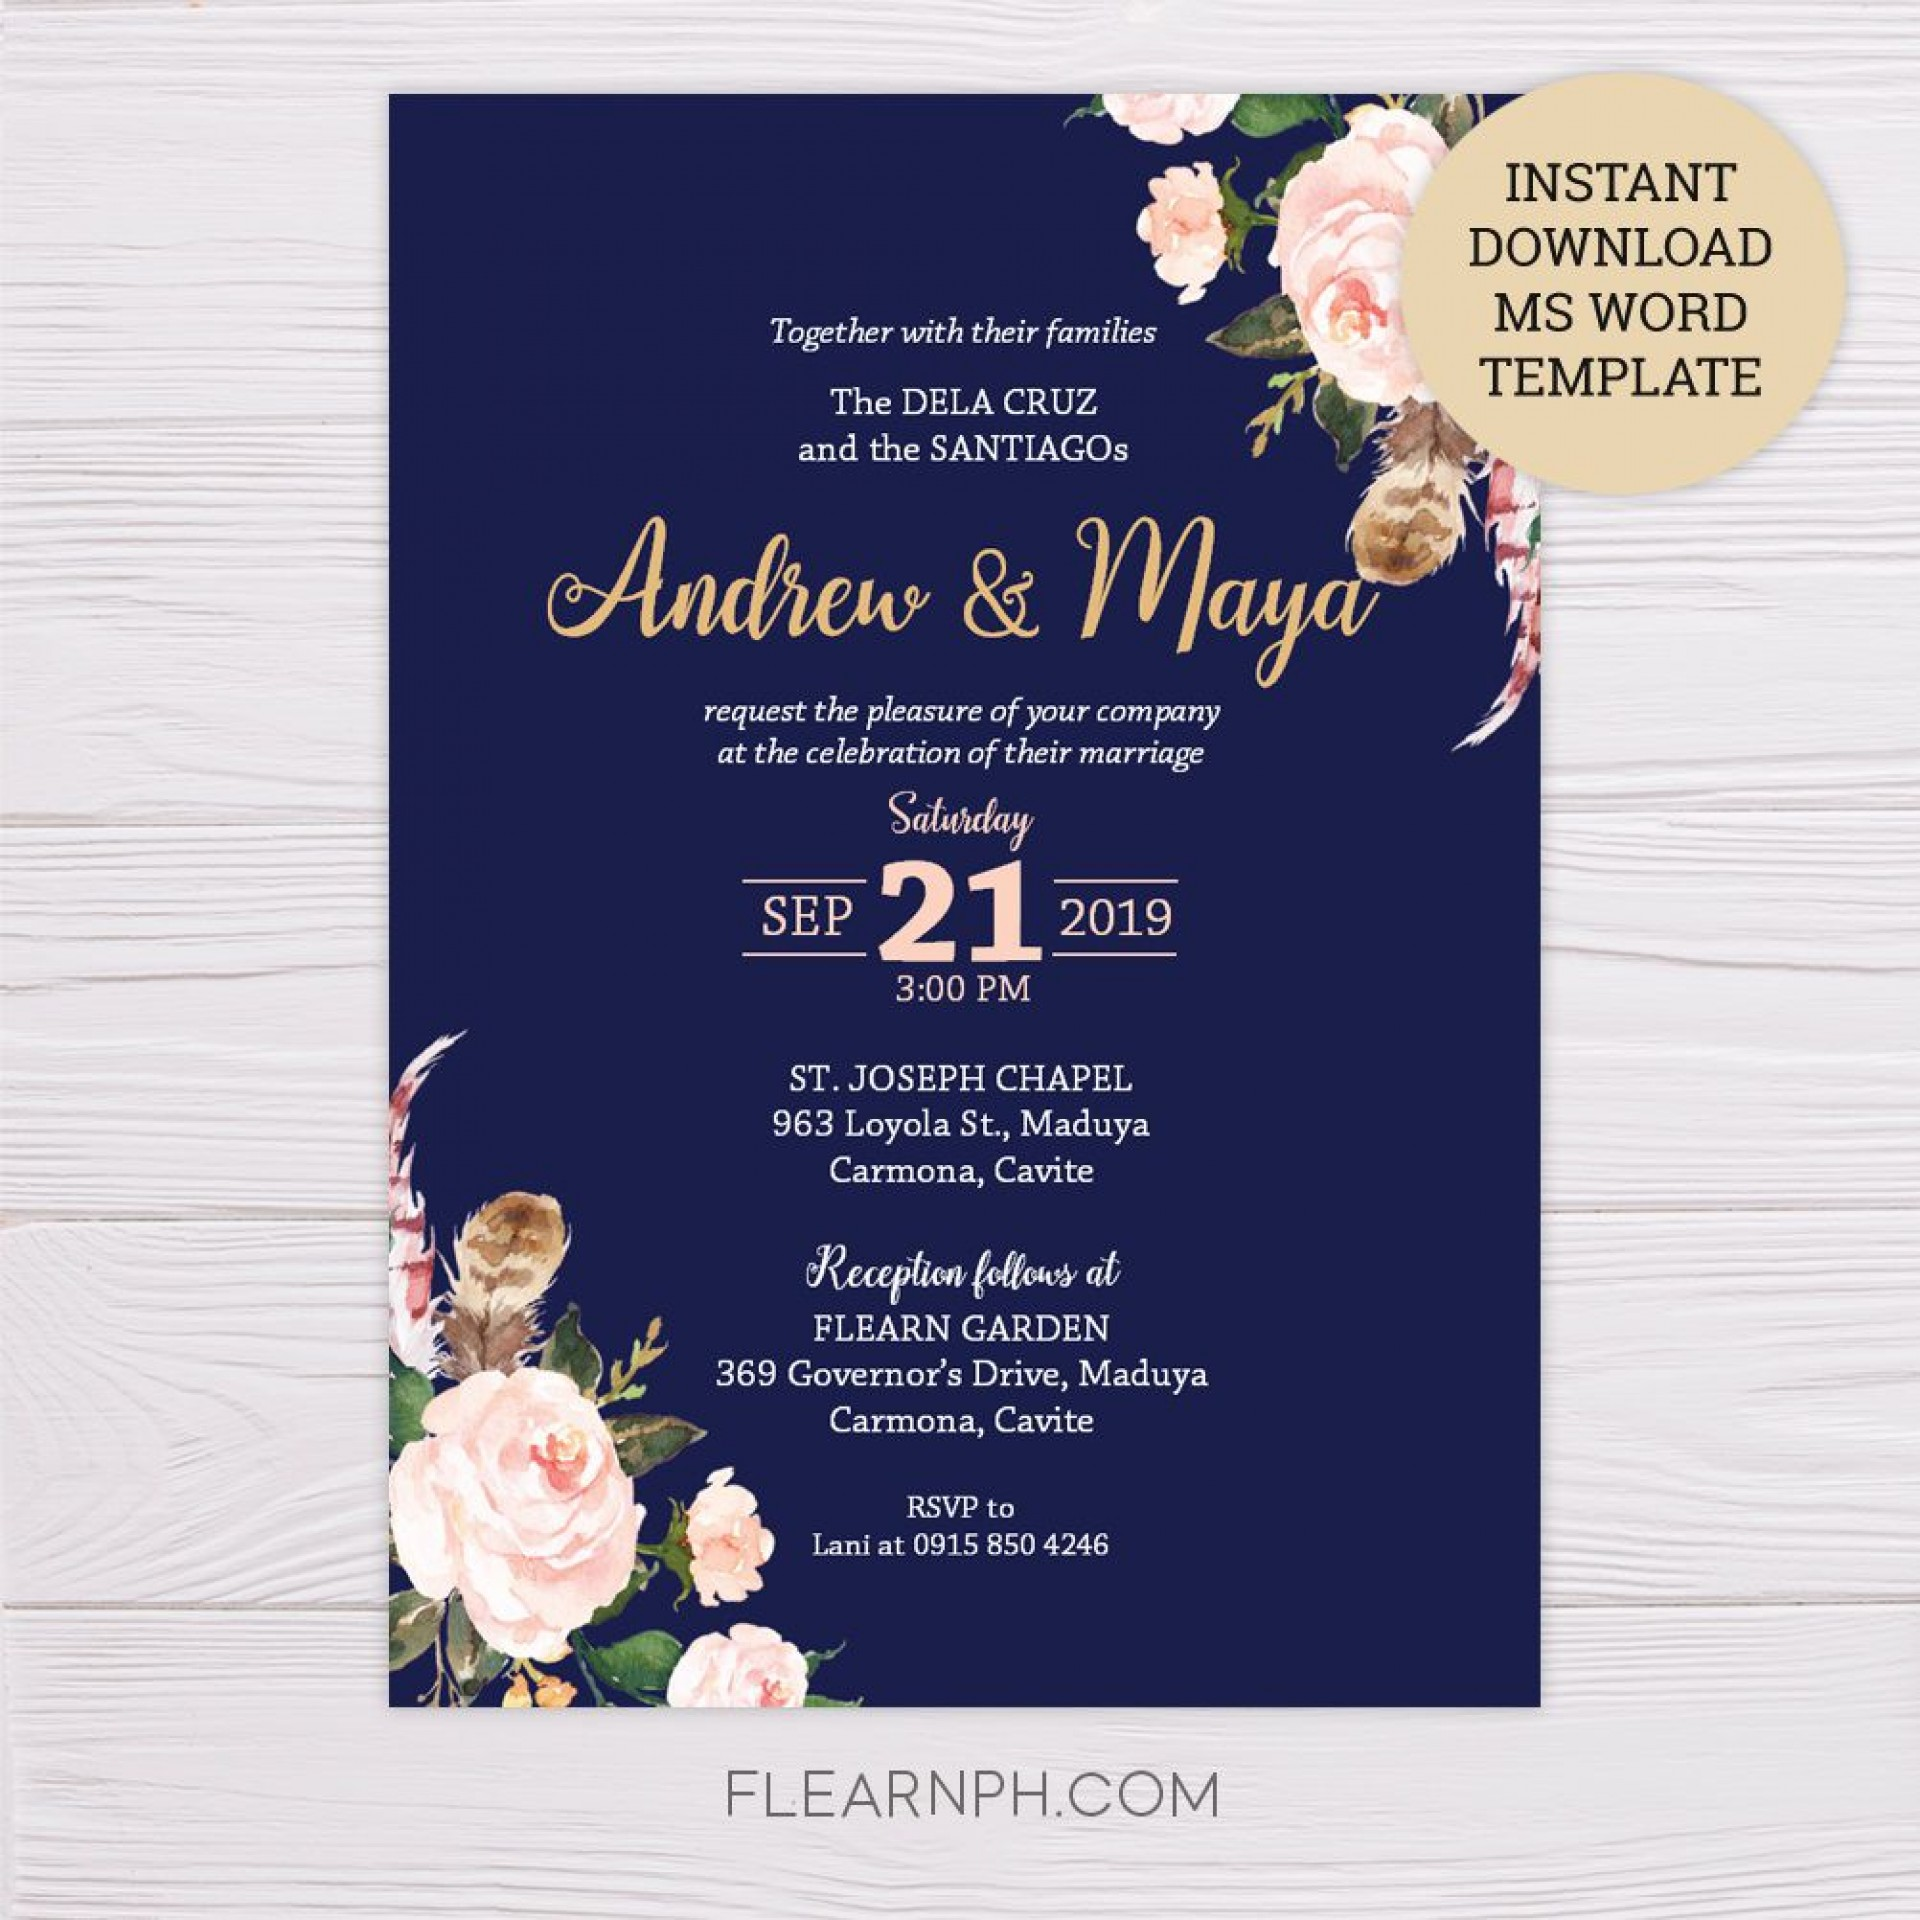 009 Excellent Microsoft Office Wedding Invitation Template Highest Clarity  Templates M1920